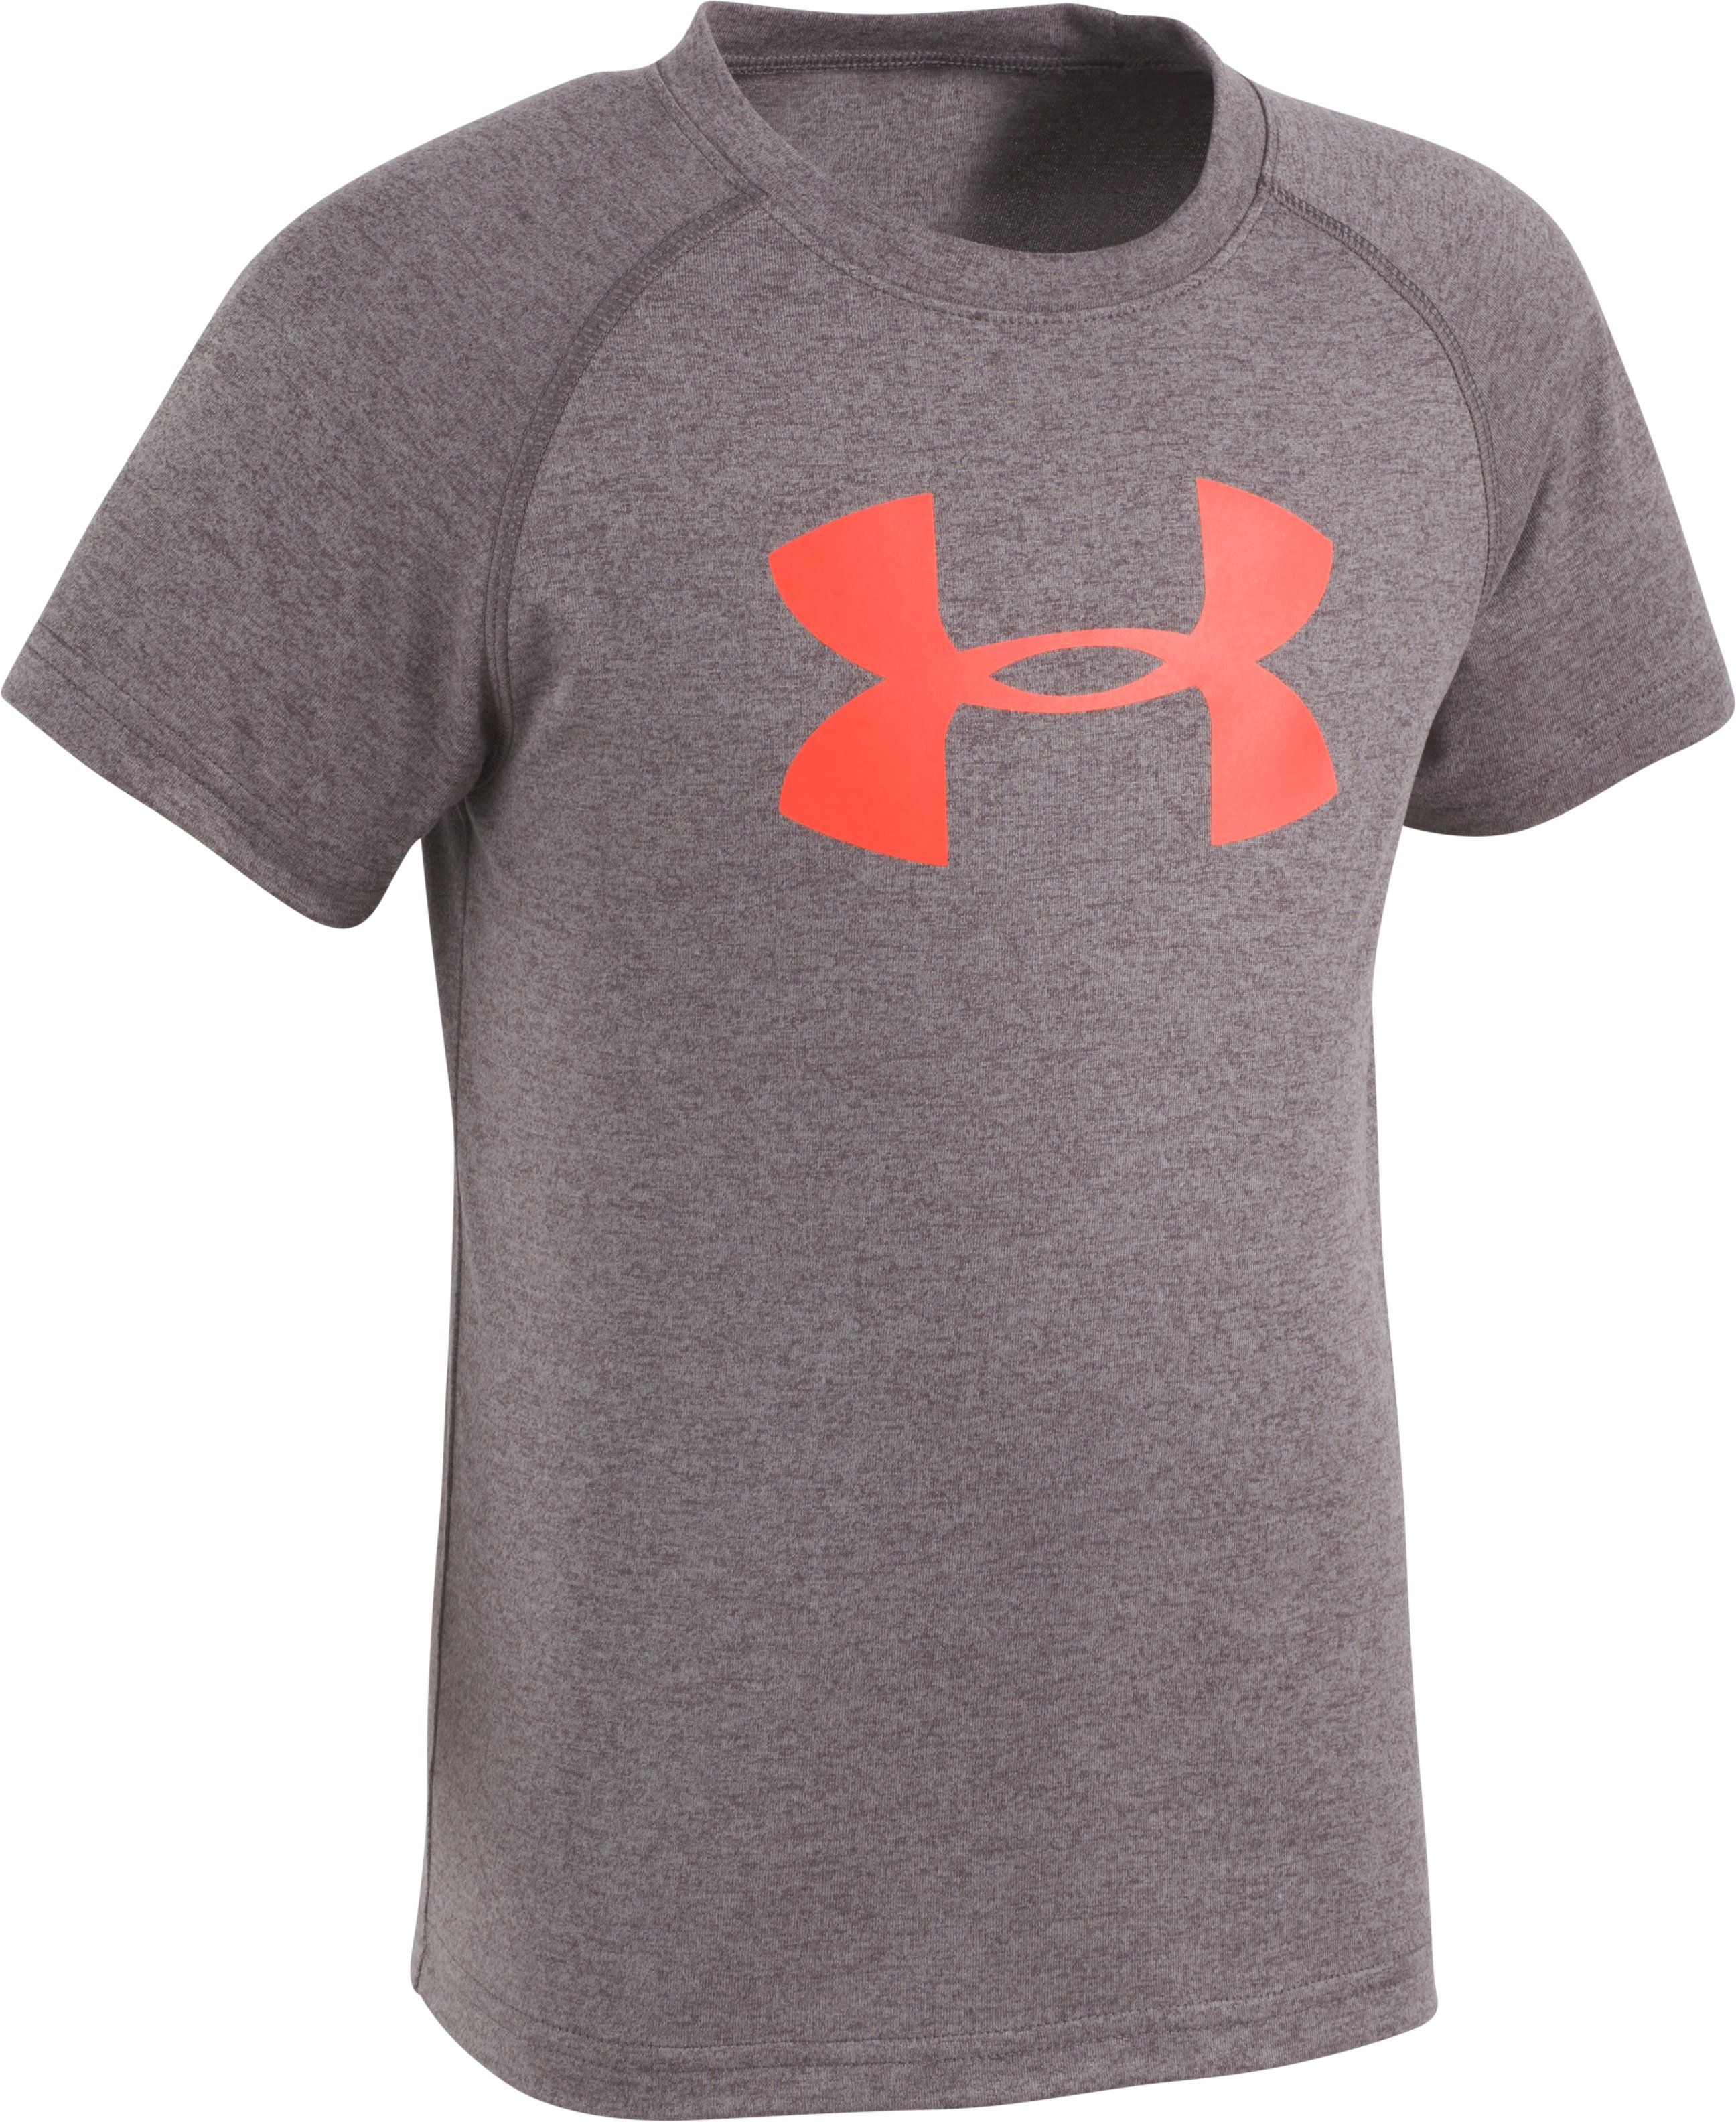 Boys' Pre-School UA Big Logo T-Shirt, Carbon Heather